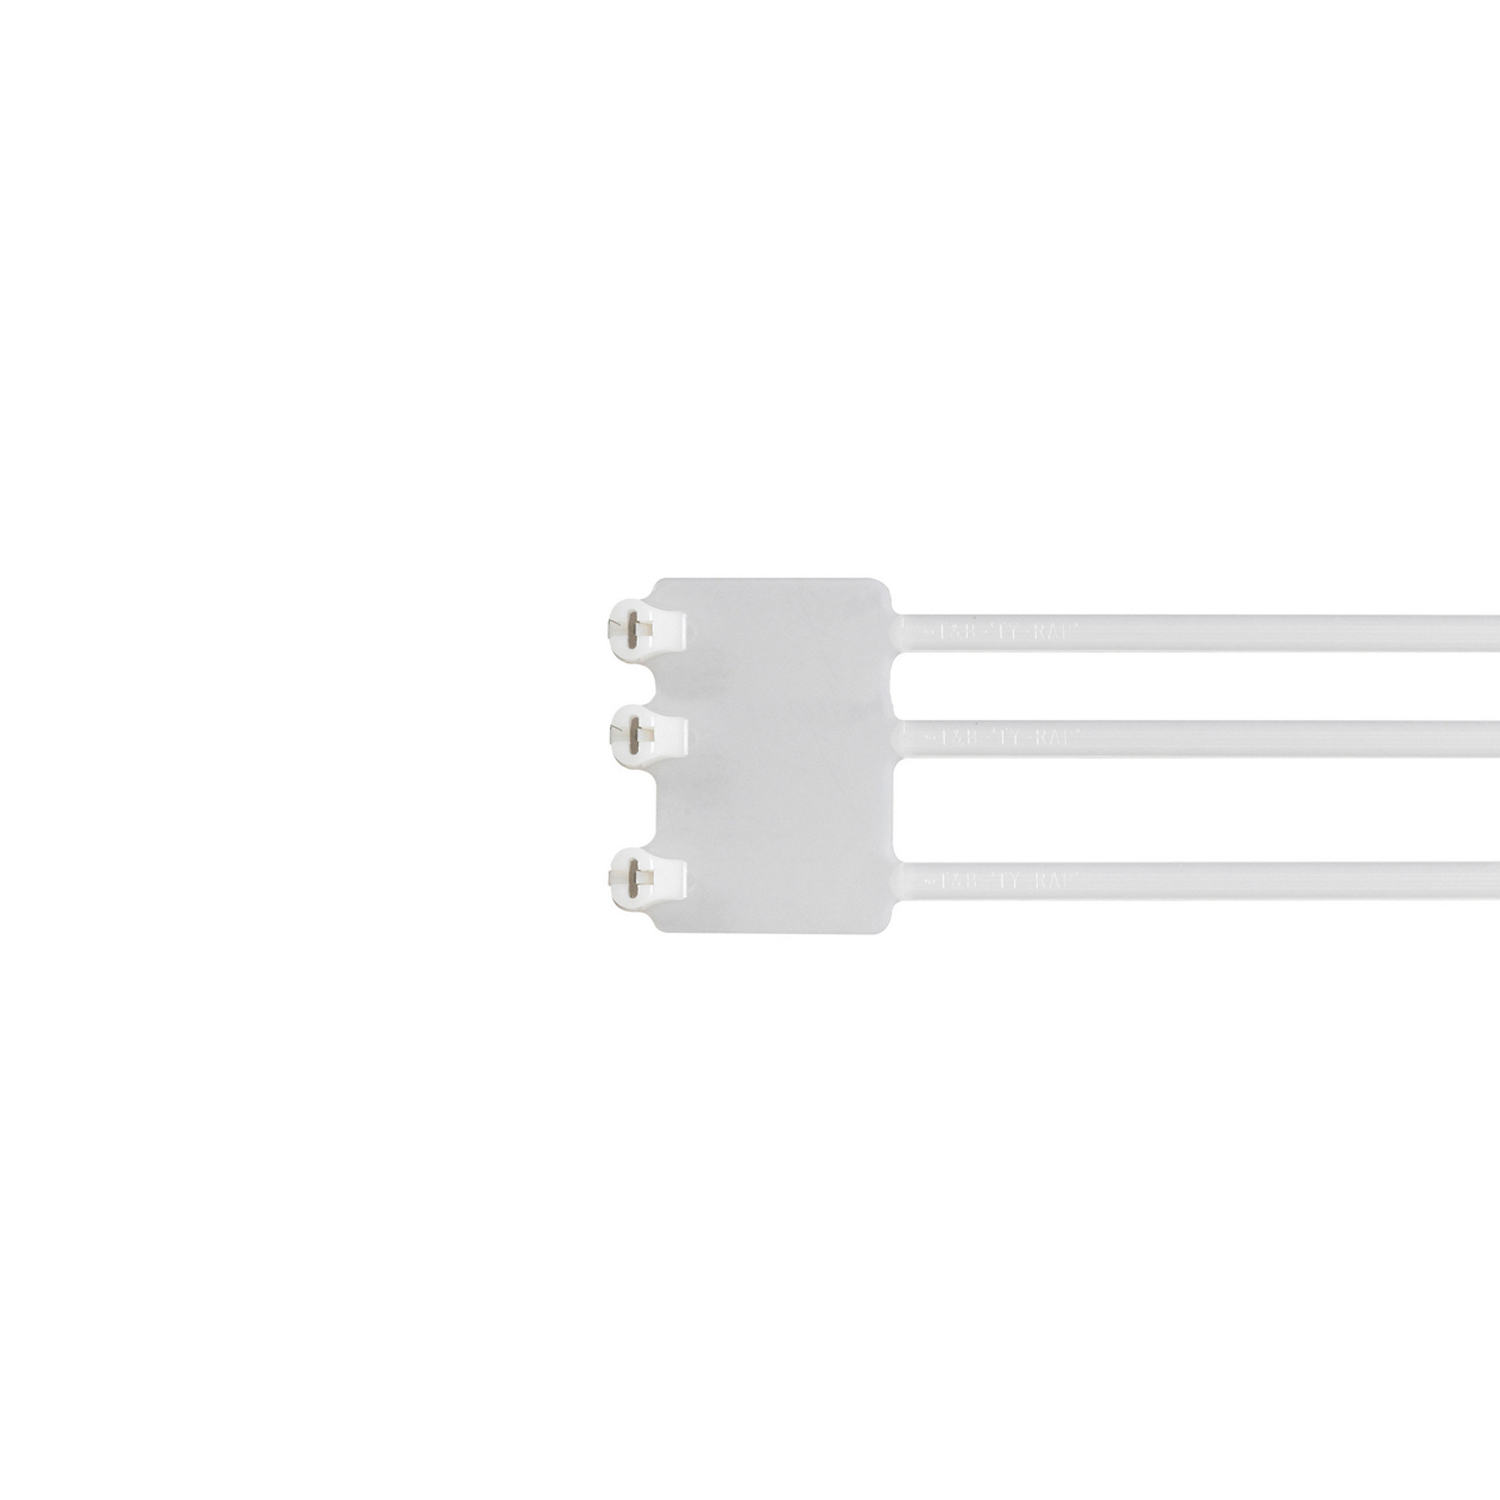 CABLE TIE 50LB 7 IN GRAY ID 1.2X1IN